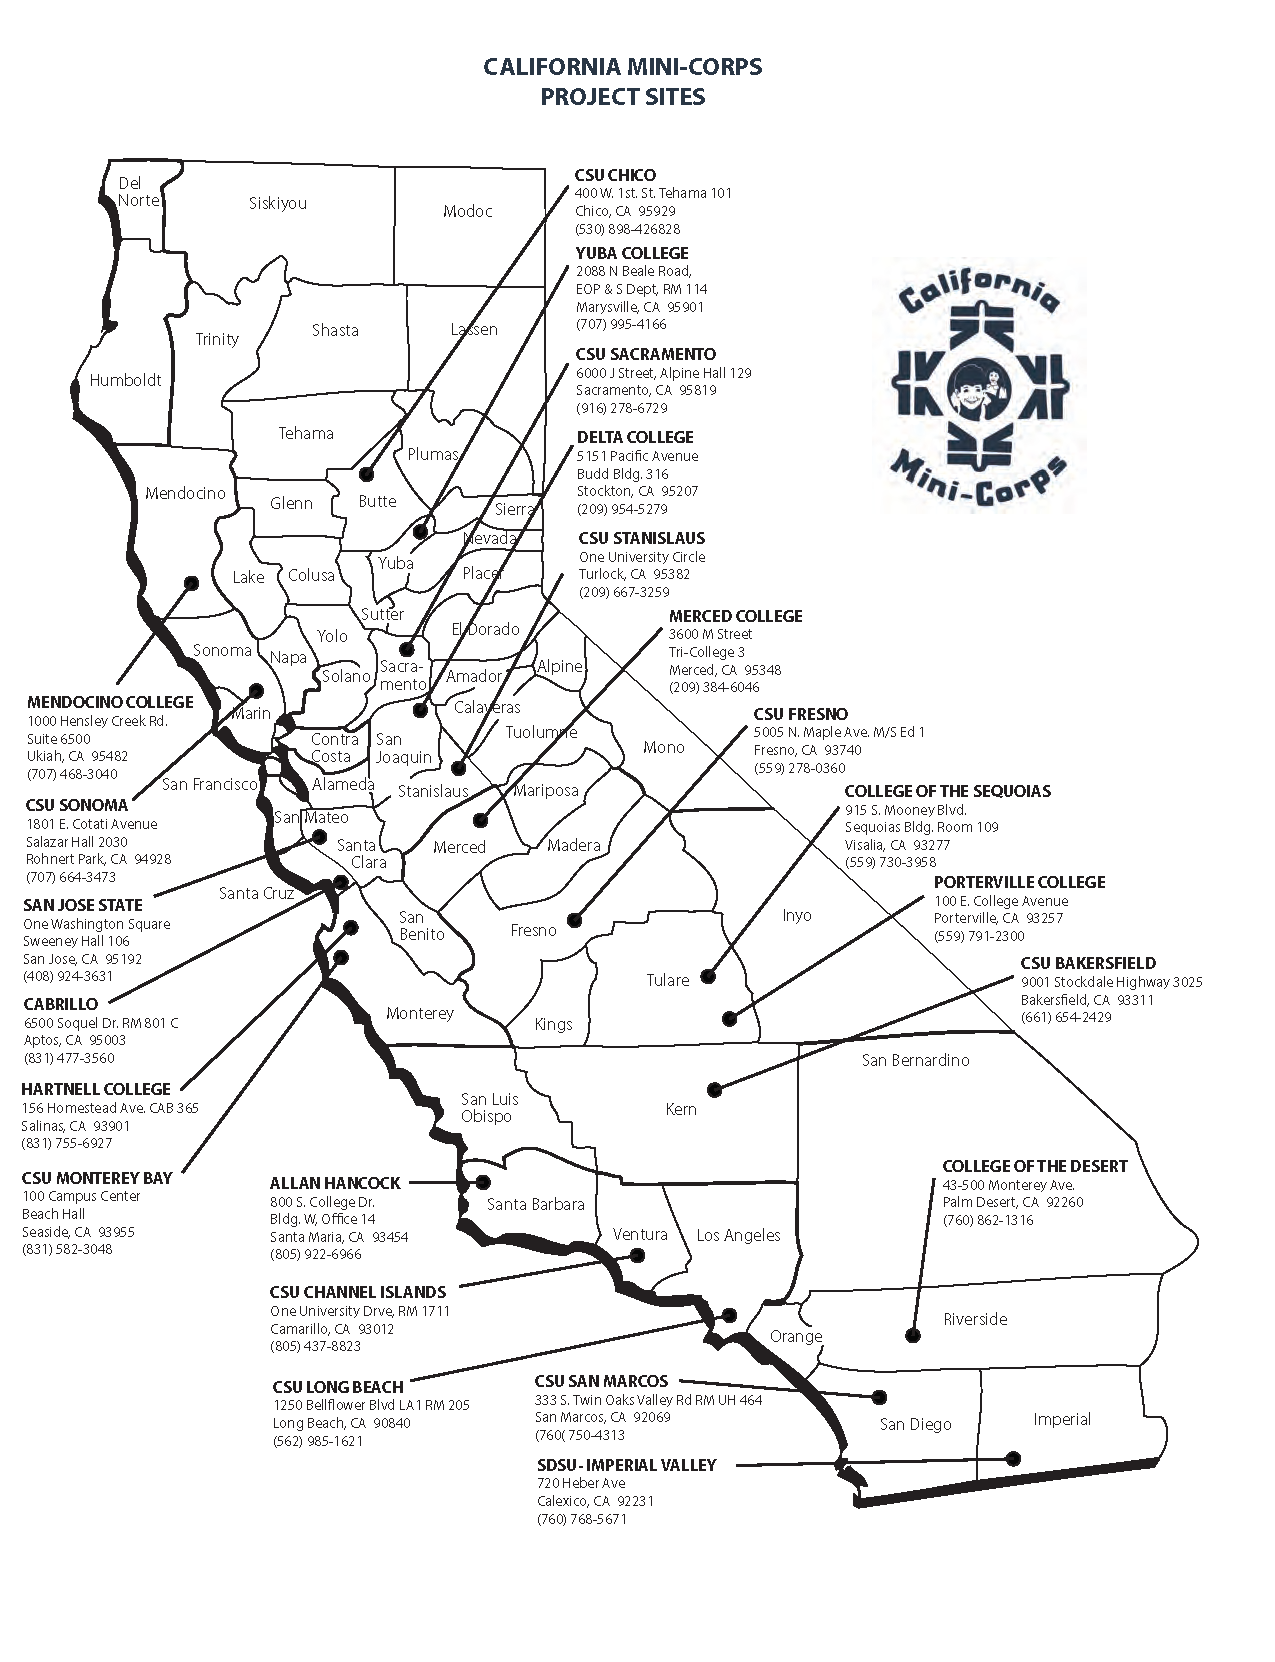 Map of California Mini-Corps Project Sites